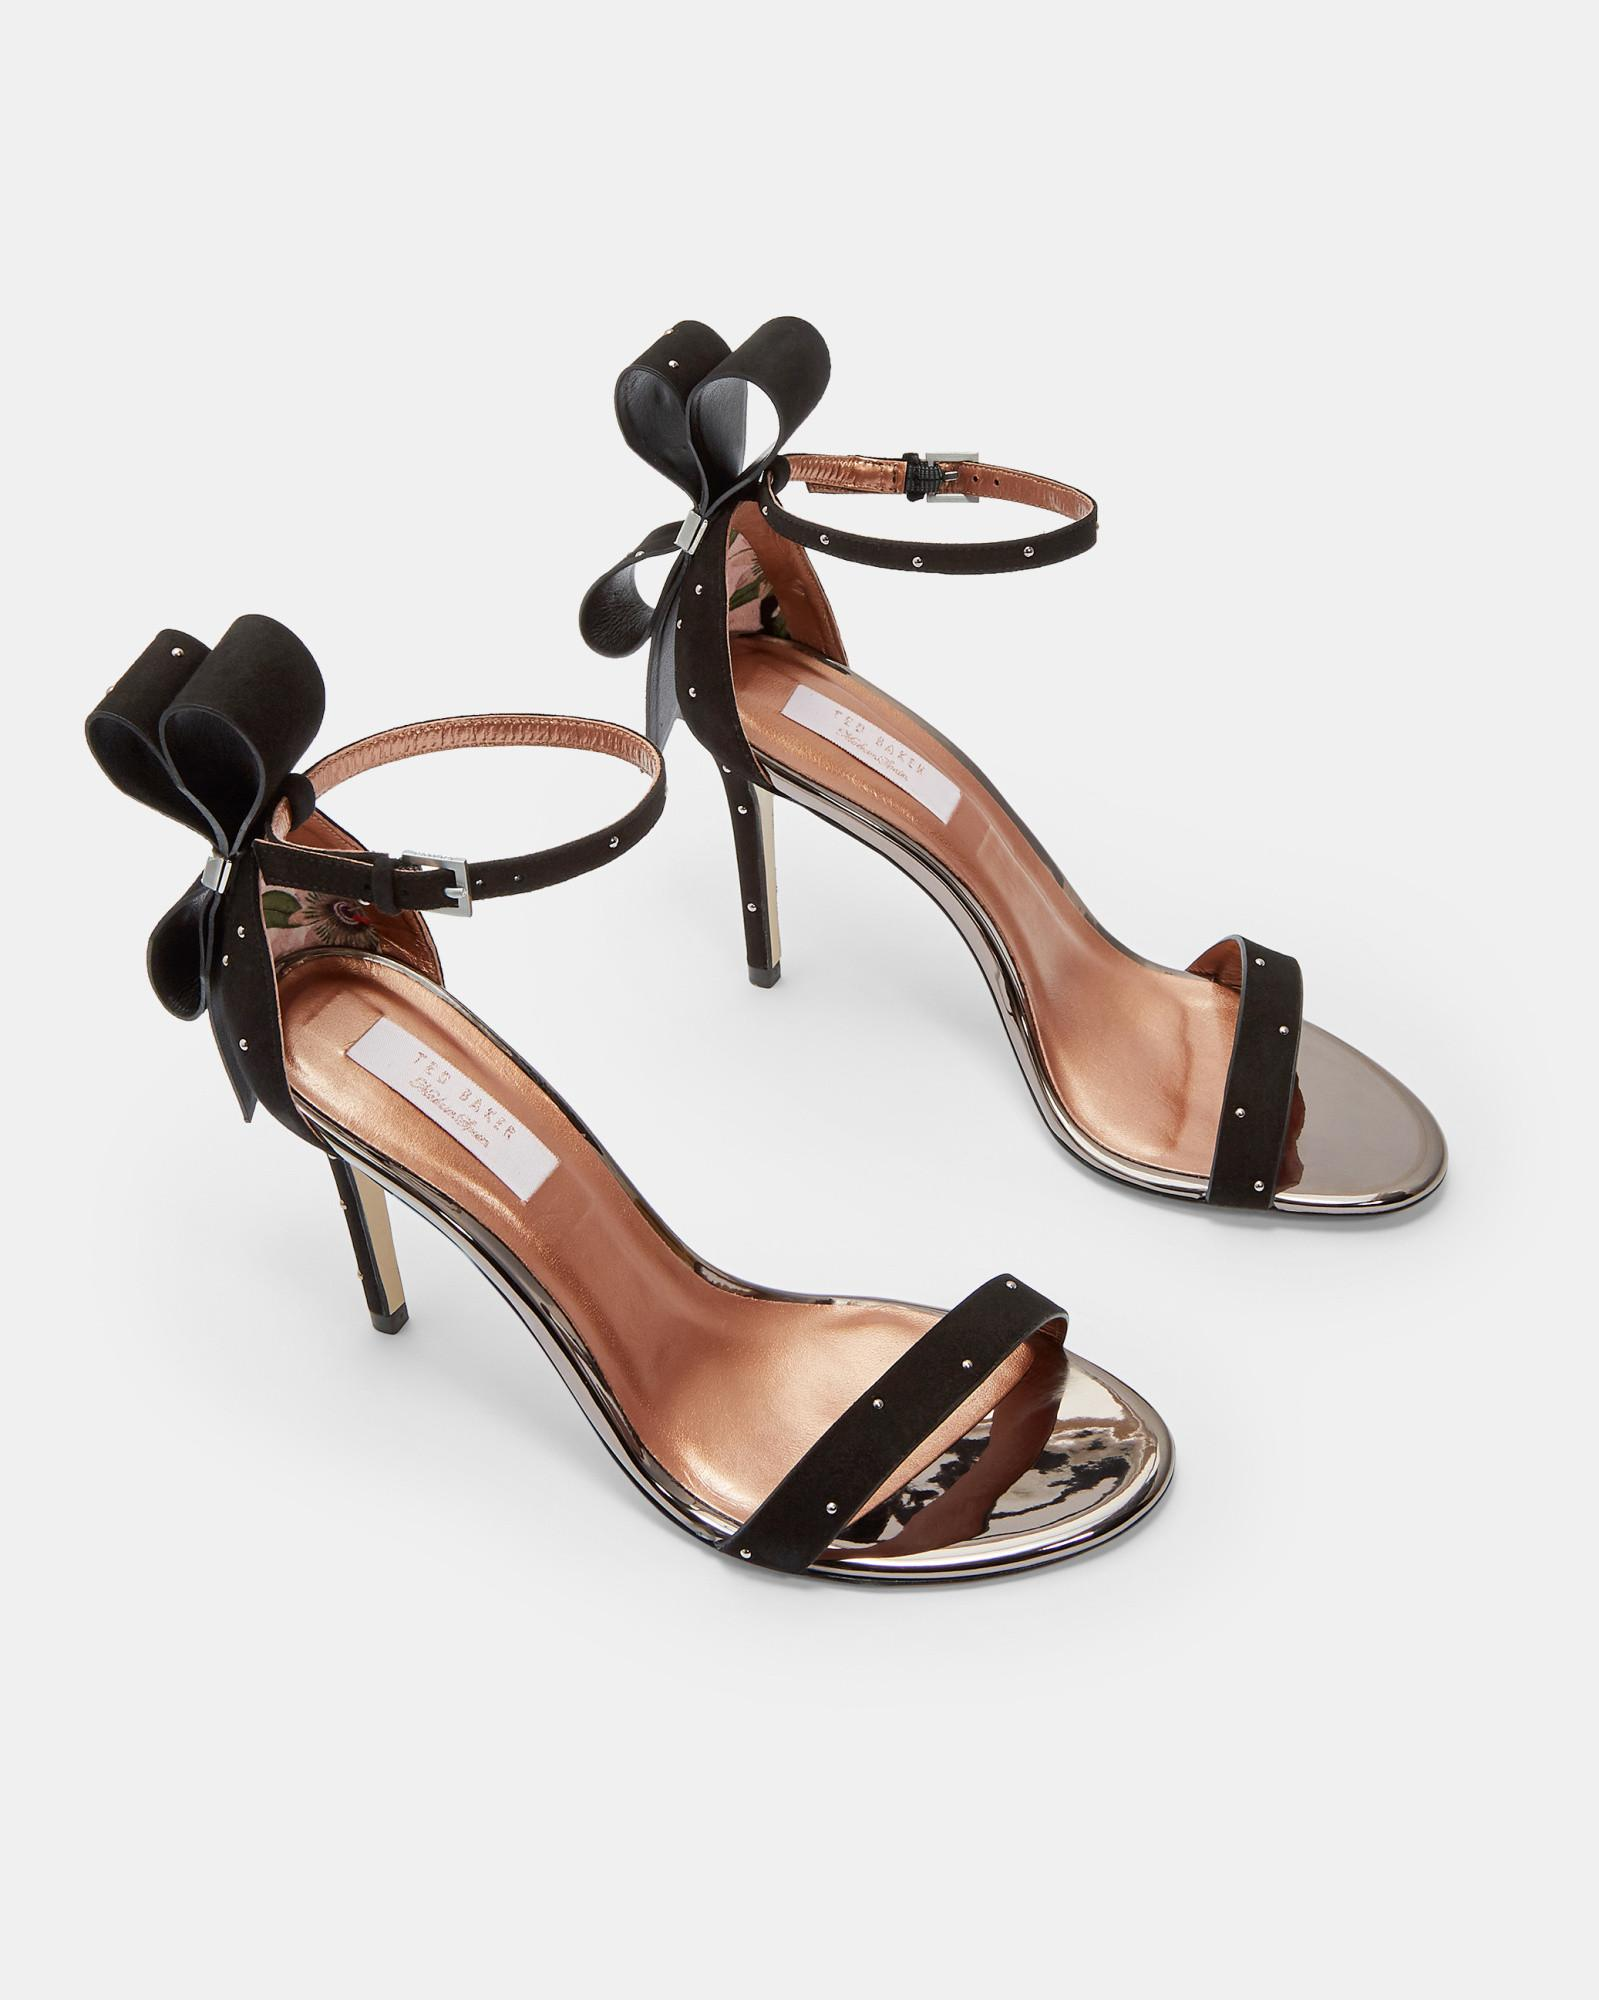 6eb9c220b Lyst - Ted Baker Oversized Bow Sandals in Black